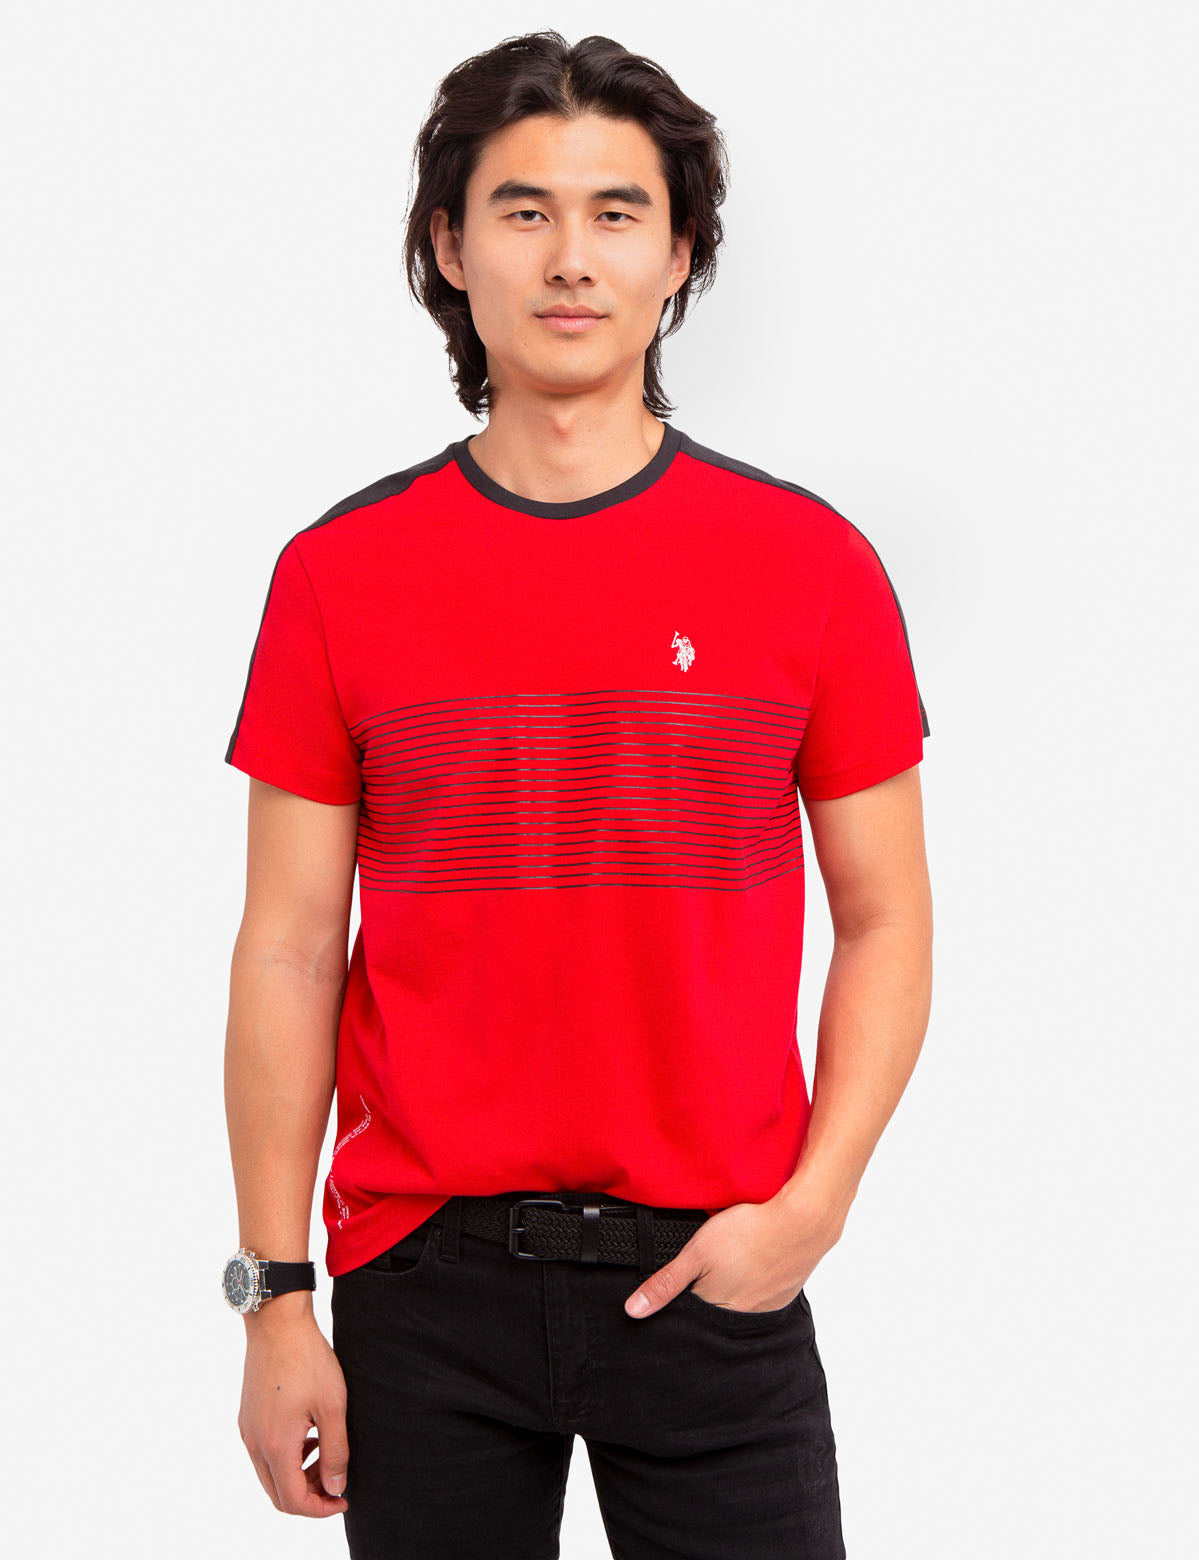 MULTI-COLOR STRIPE TEE-SHIRT - U.S. Polo Assn.